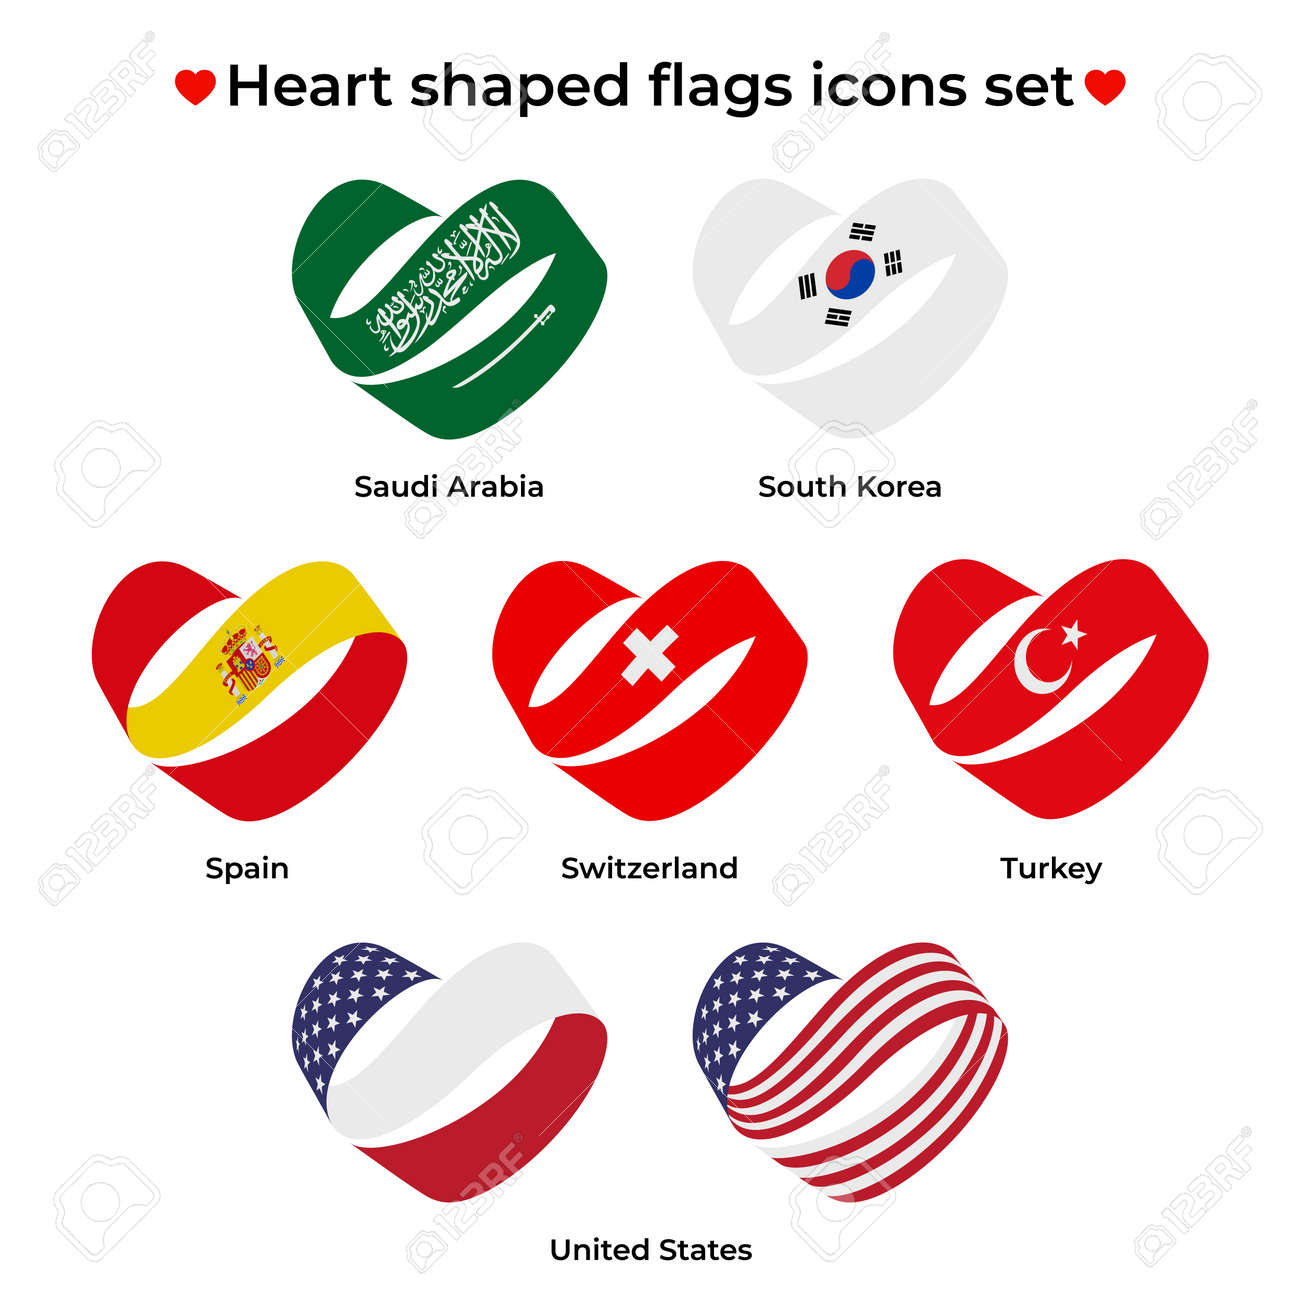 Heart shaped flags icons set. Icon flag from Ribbon curls. Vector icon, symbol, button. Illustration in flat style - 170188431